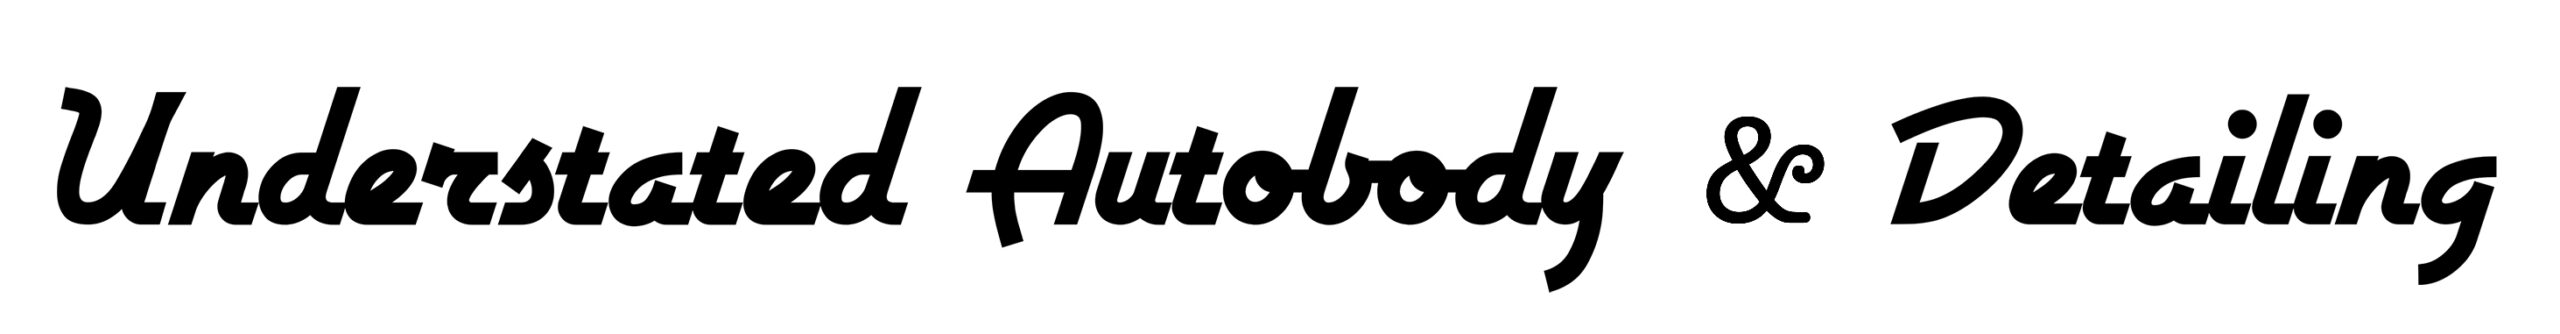 Understated Auto and Detail Logo copy